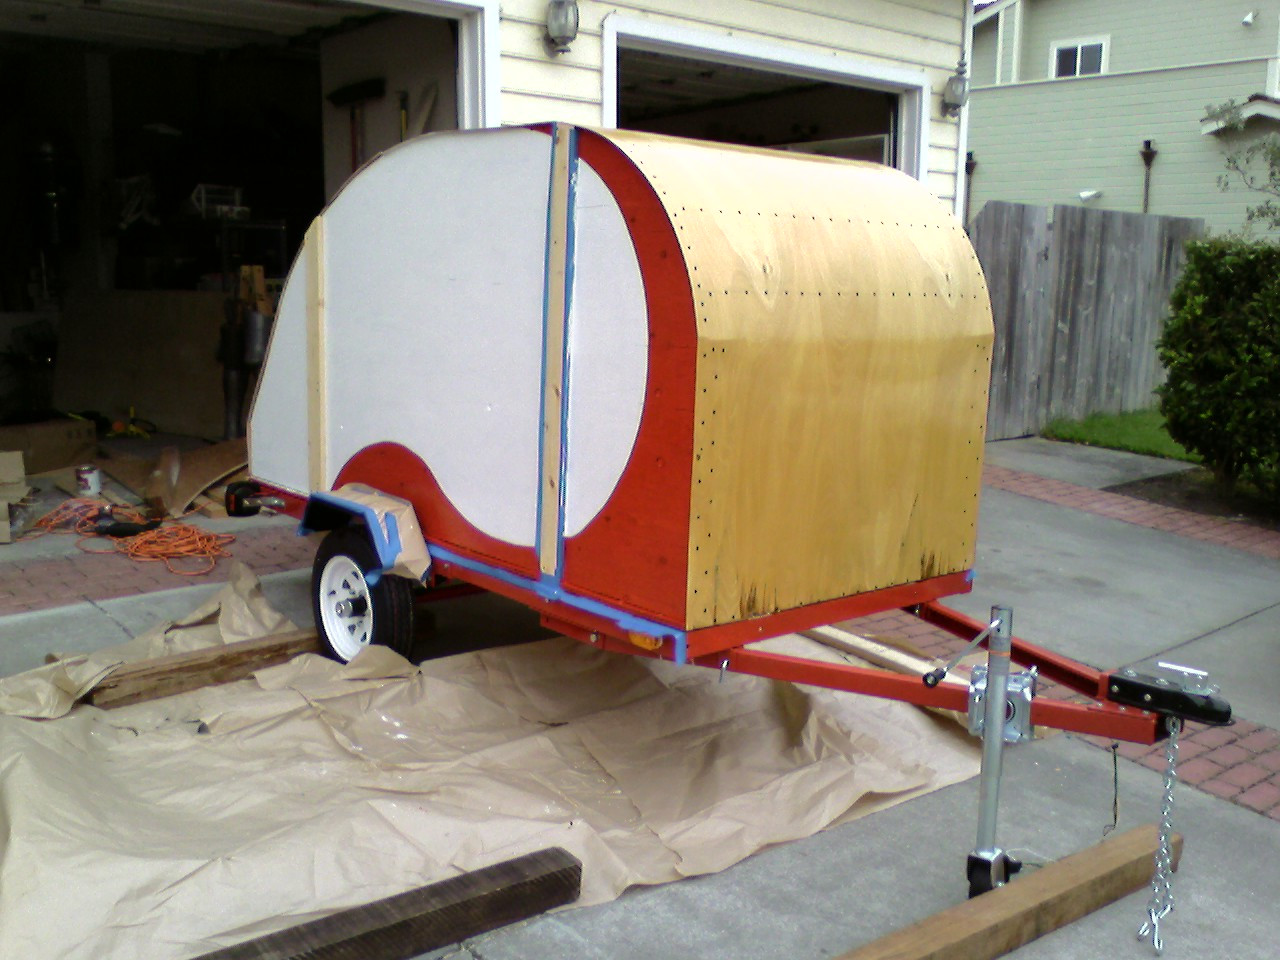 Best ideas about DIY Camper Trailer Kits . Save or Pin Build Your Own RV With Kits & Plans For Teardrop Trailers Now.